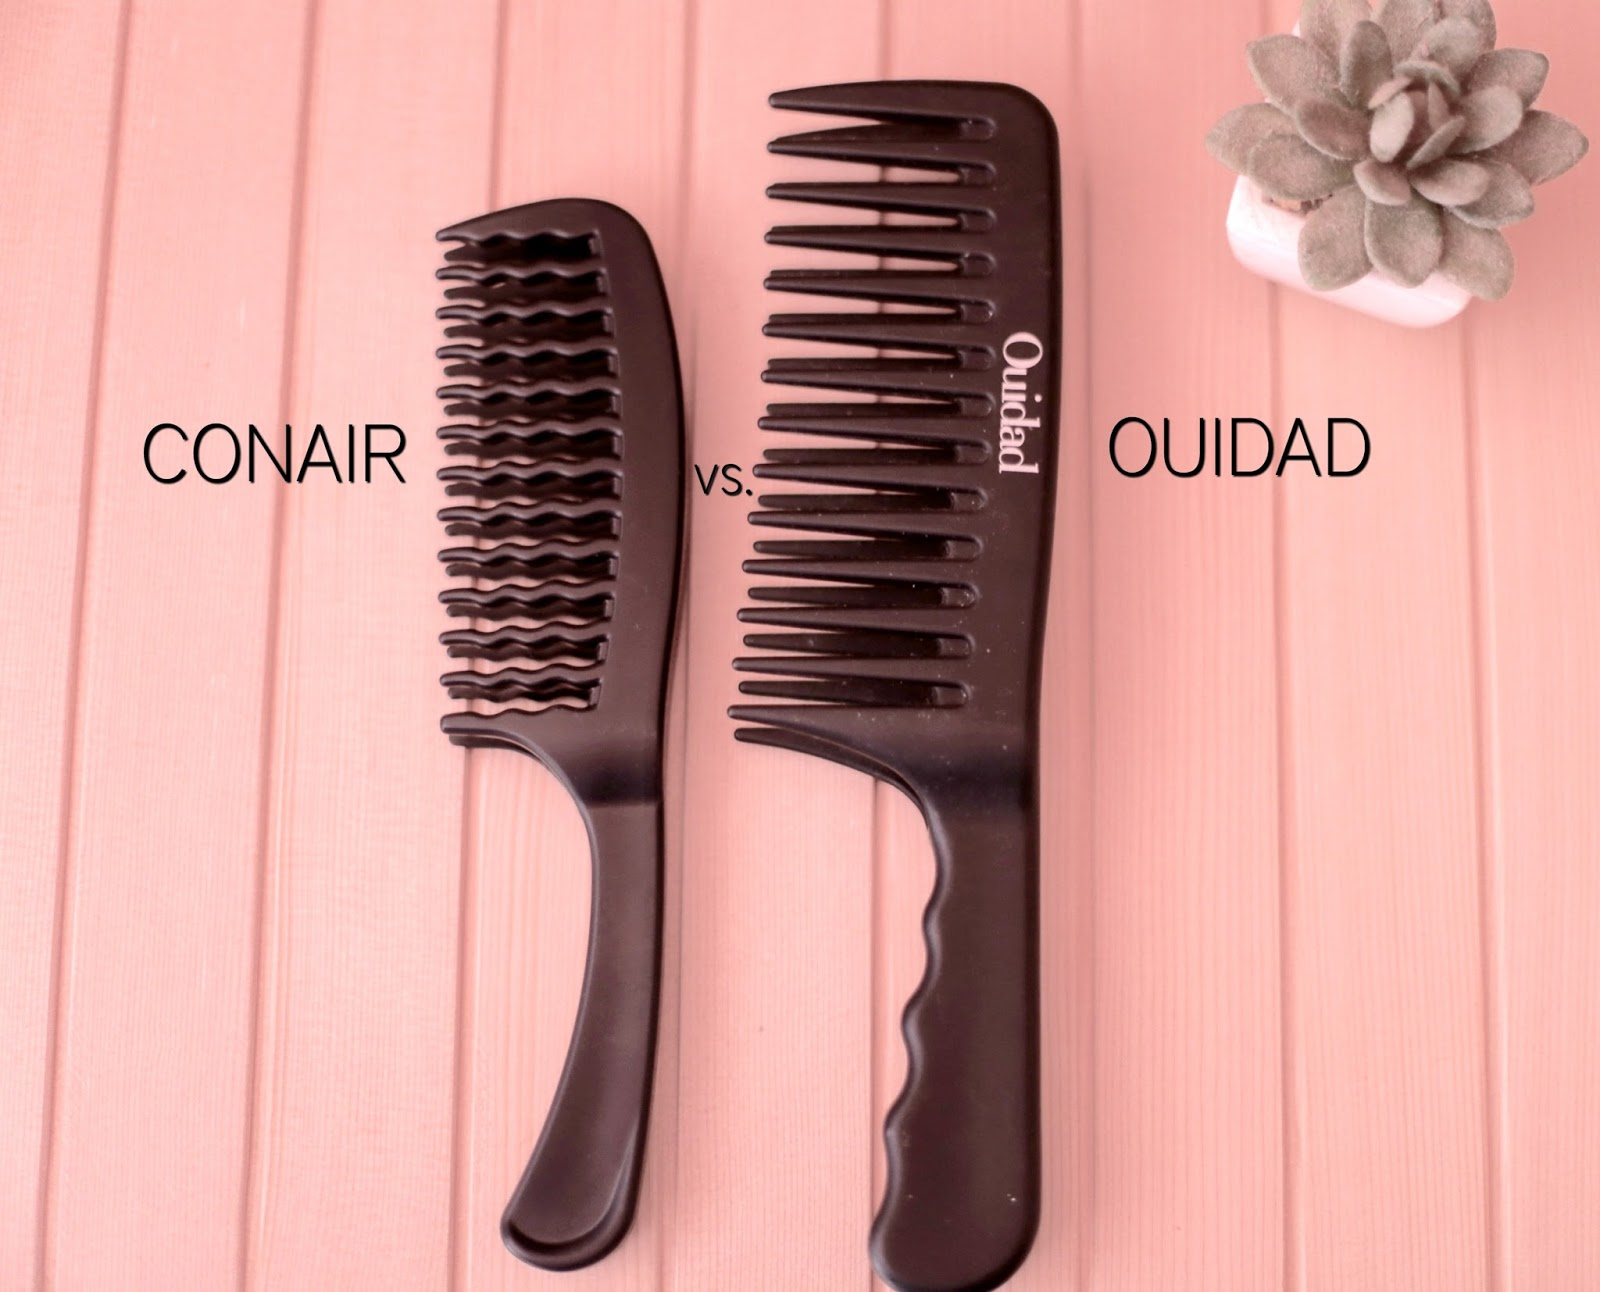 Battle Of The Double Rowed Super Detangling Combs